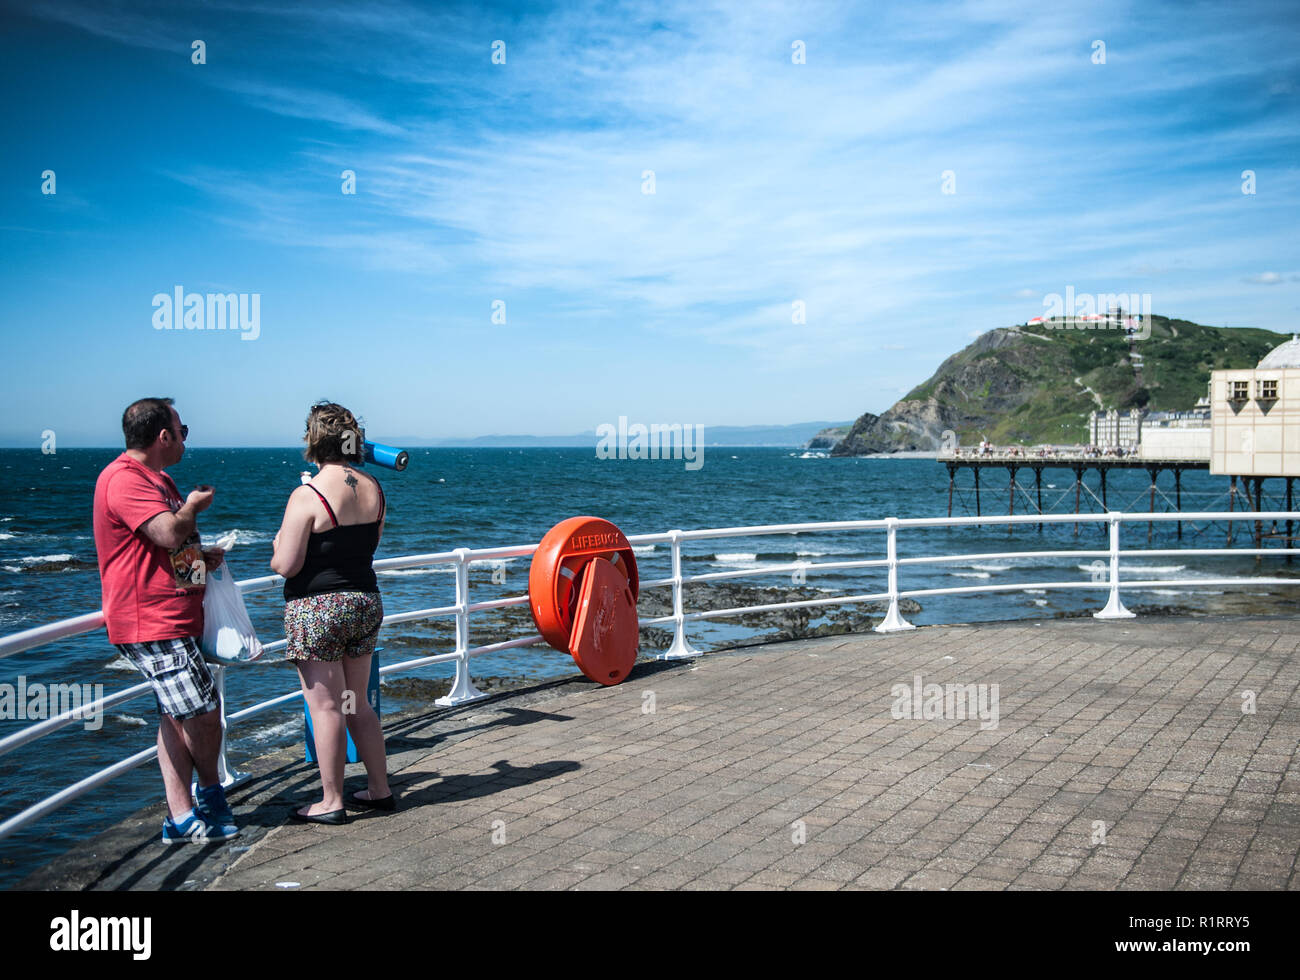 A couple, man and woman enjoy an ice cream whilst taking in the view of the bay. - Stock Image